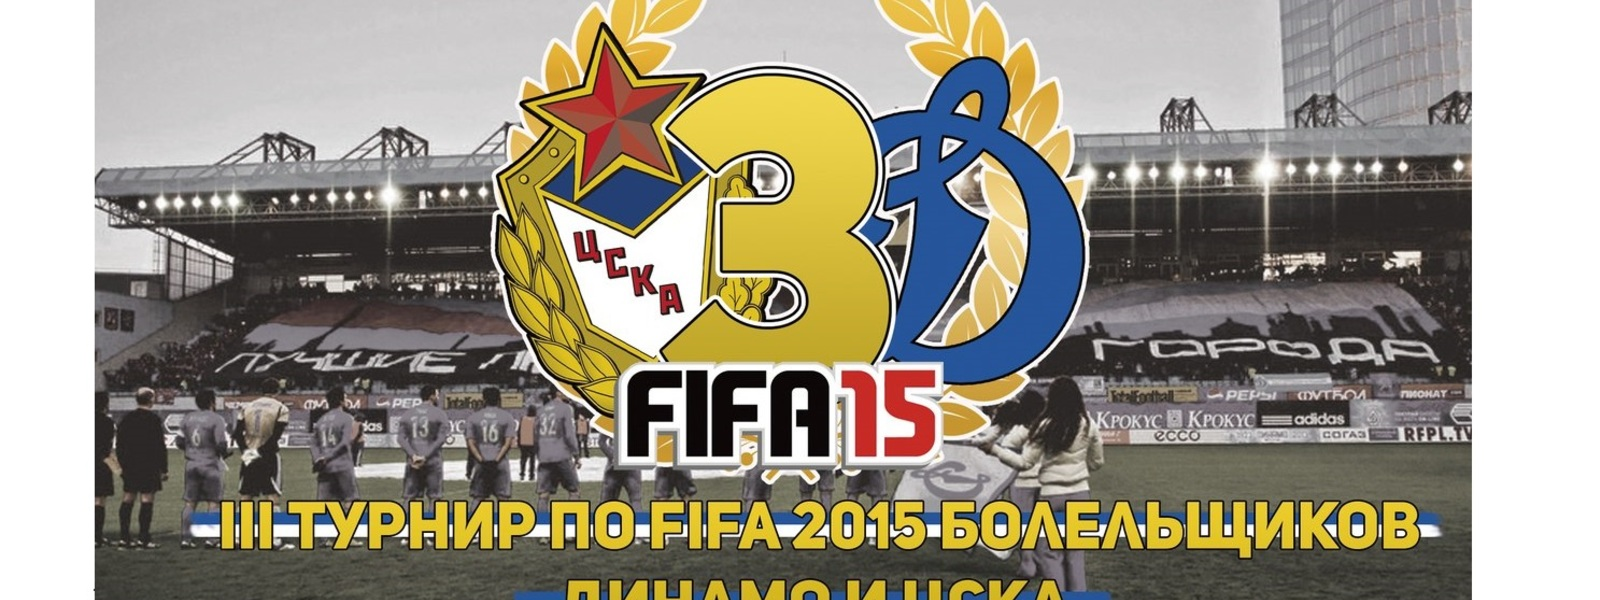 Very big fifa2015 tyrnir